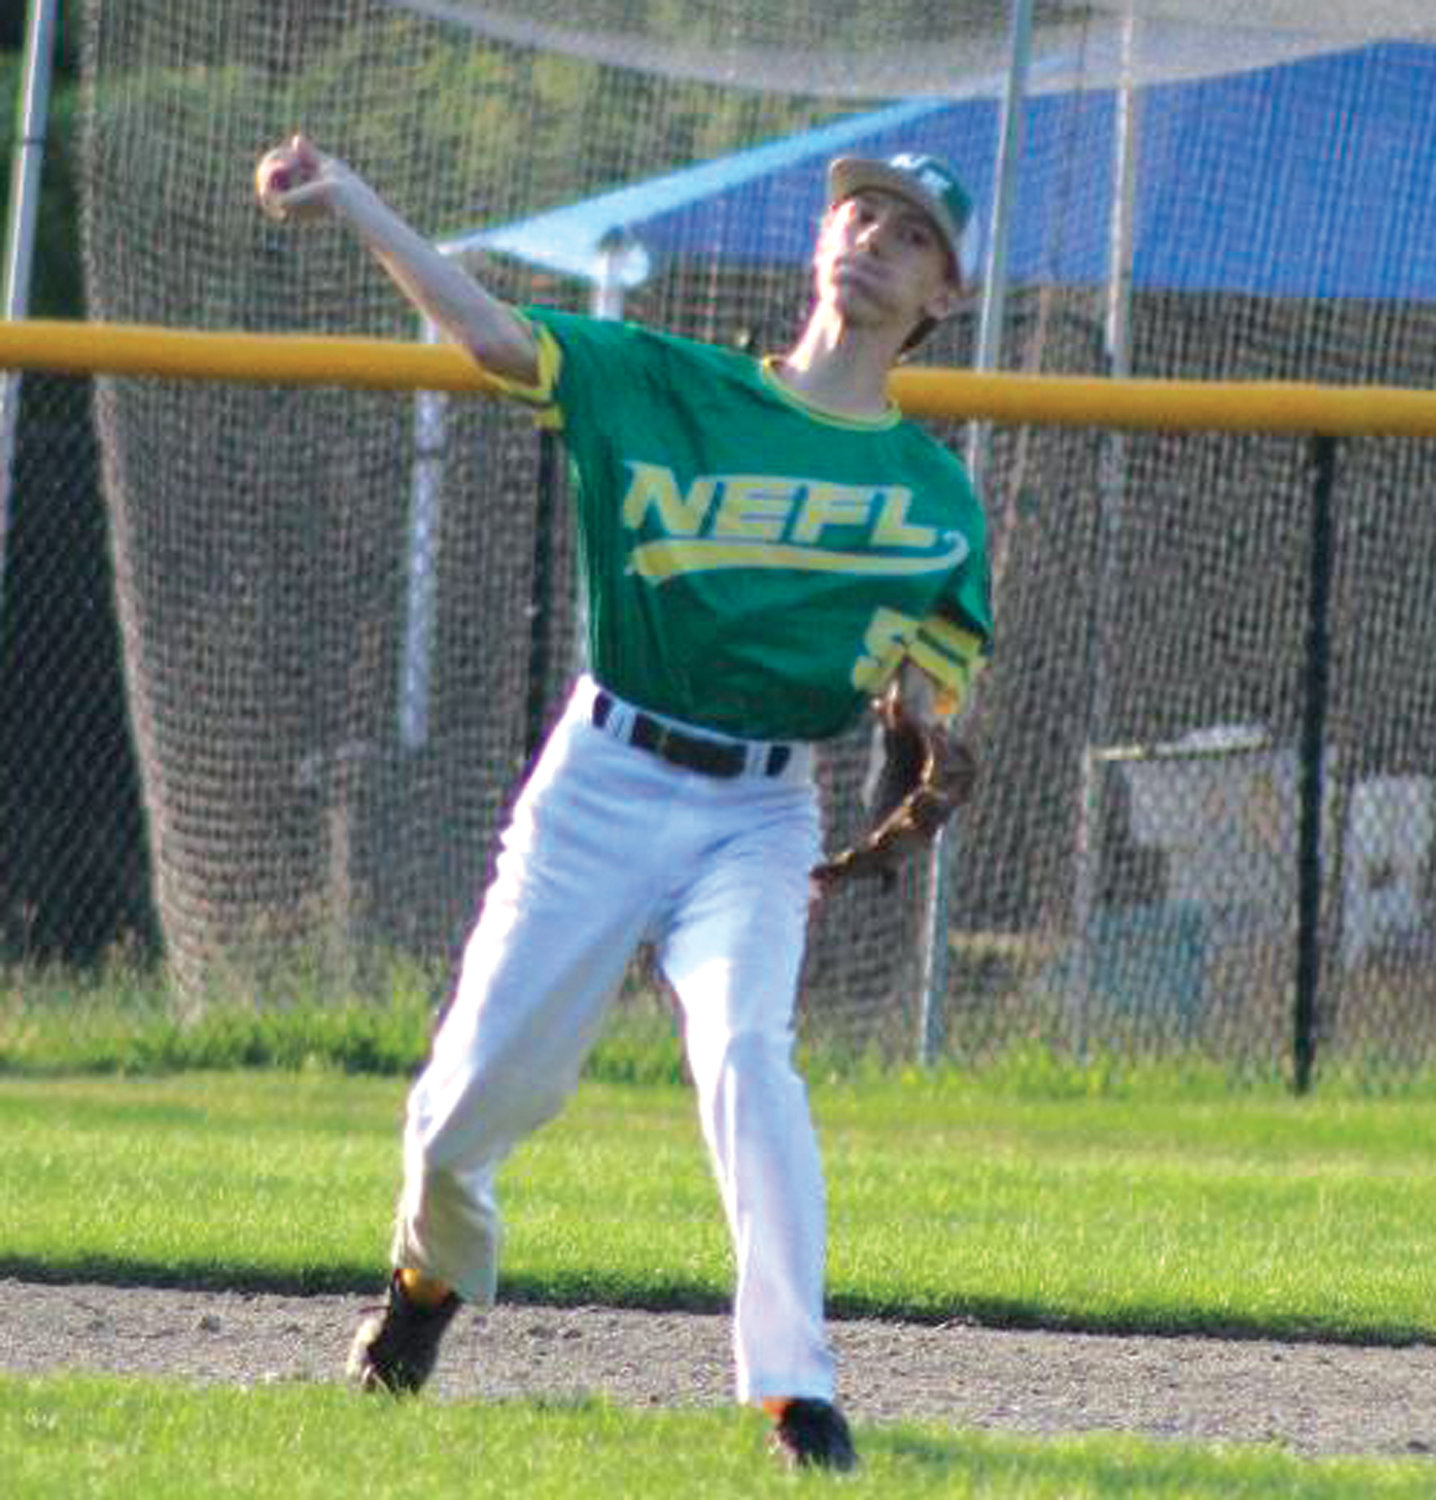 HOT CORNER: NEFL's Andrew Merryfield makes the throw to first from third base in Woonsocket.